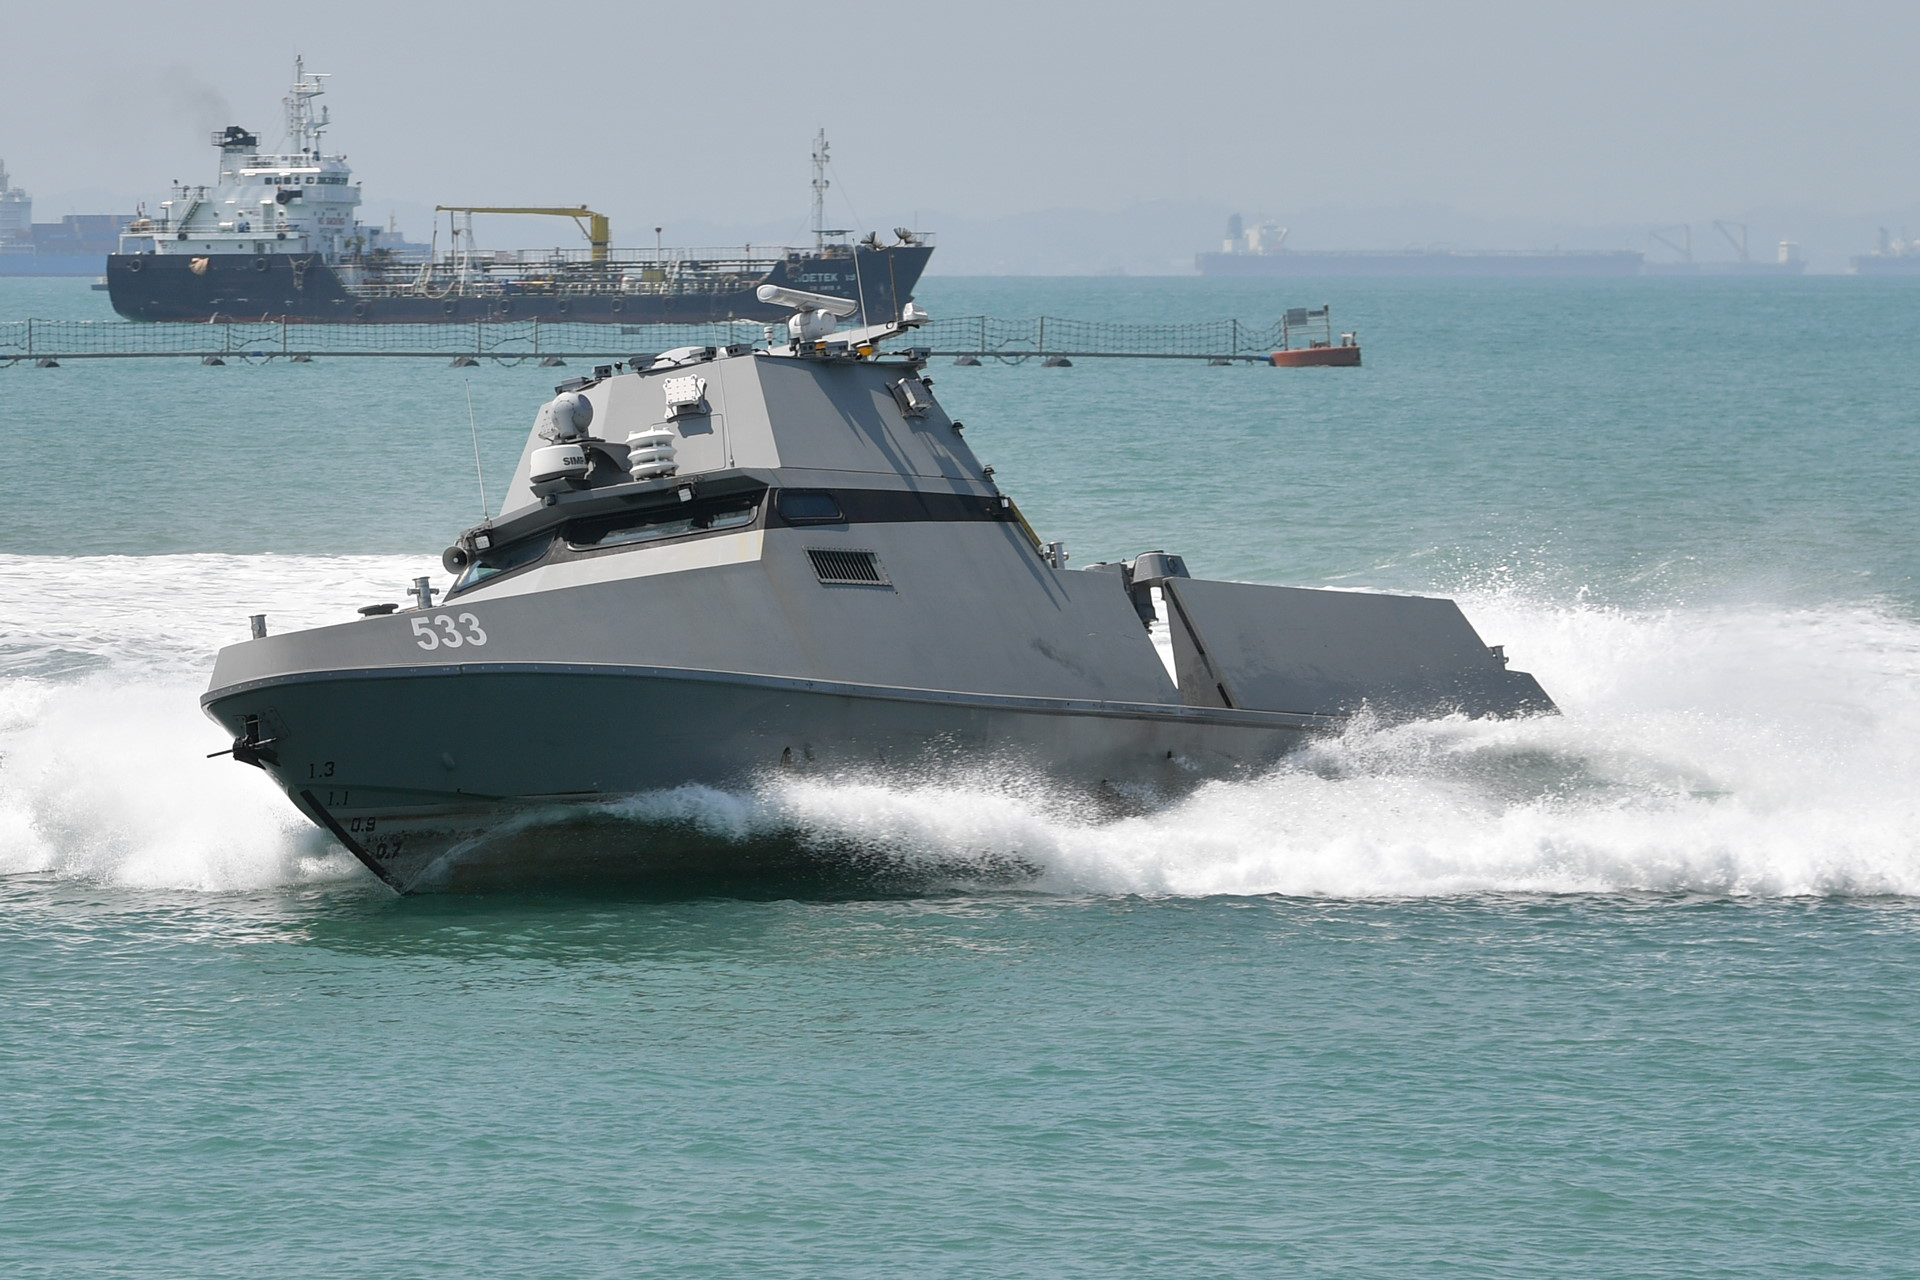 Self-driving unmanned vessels to patrol S'pore waters